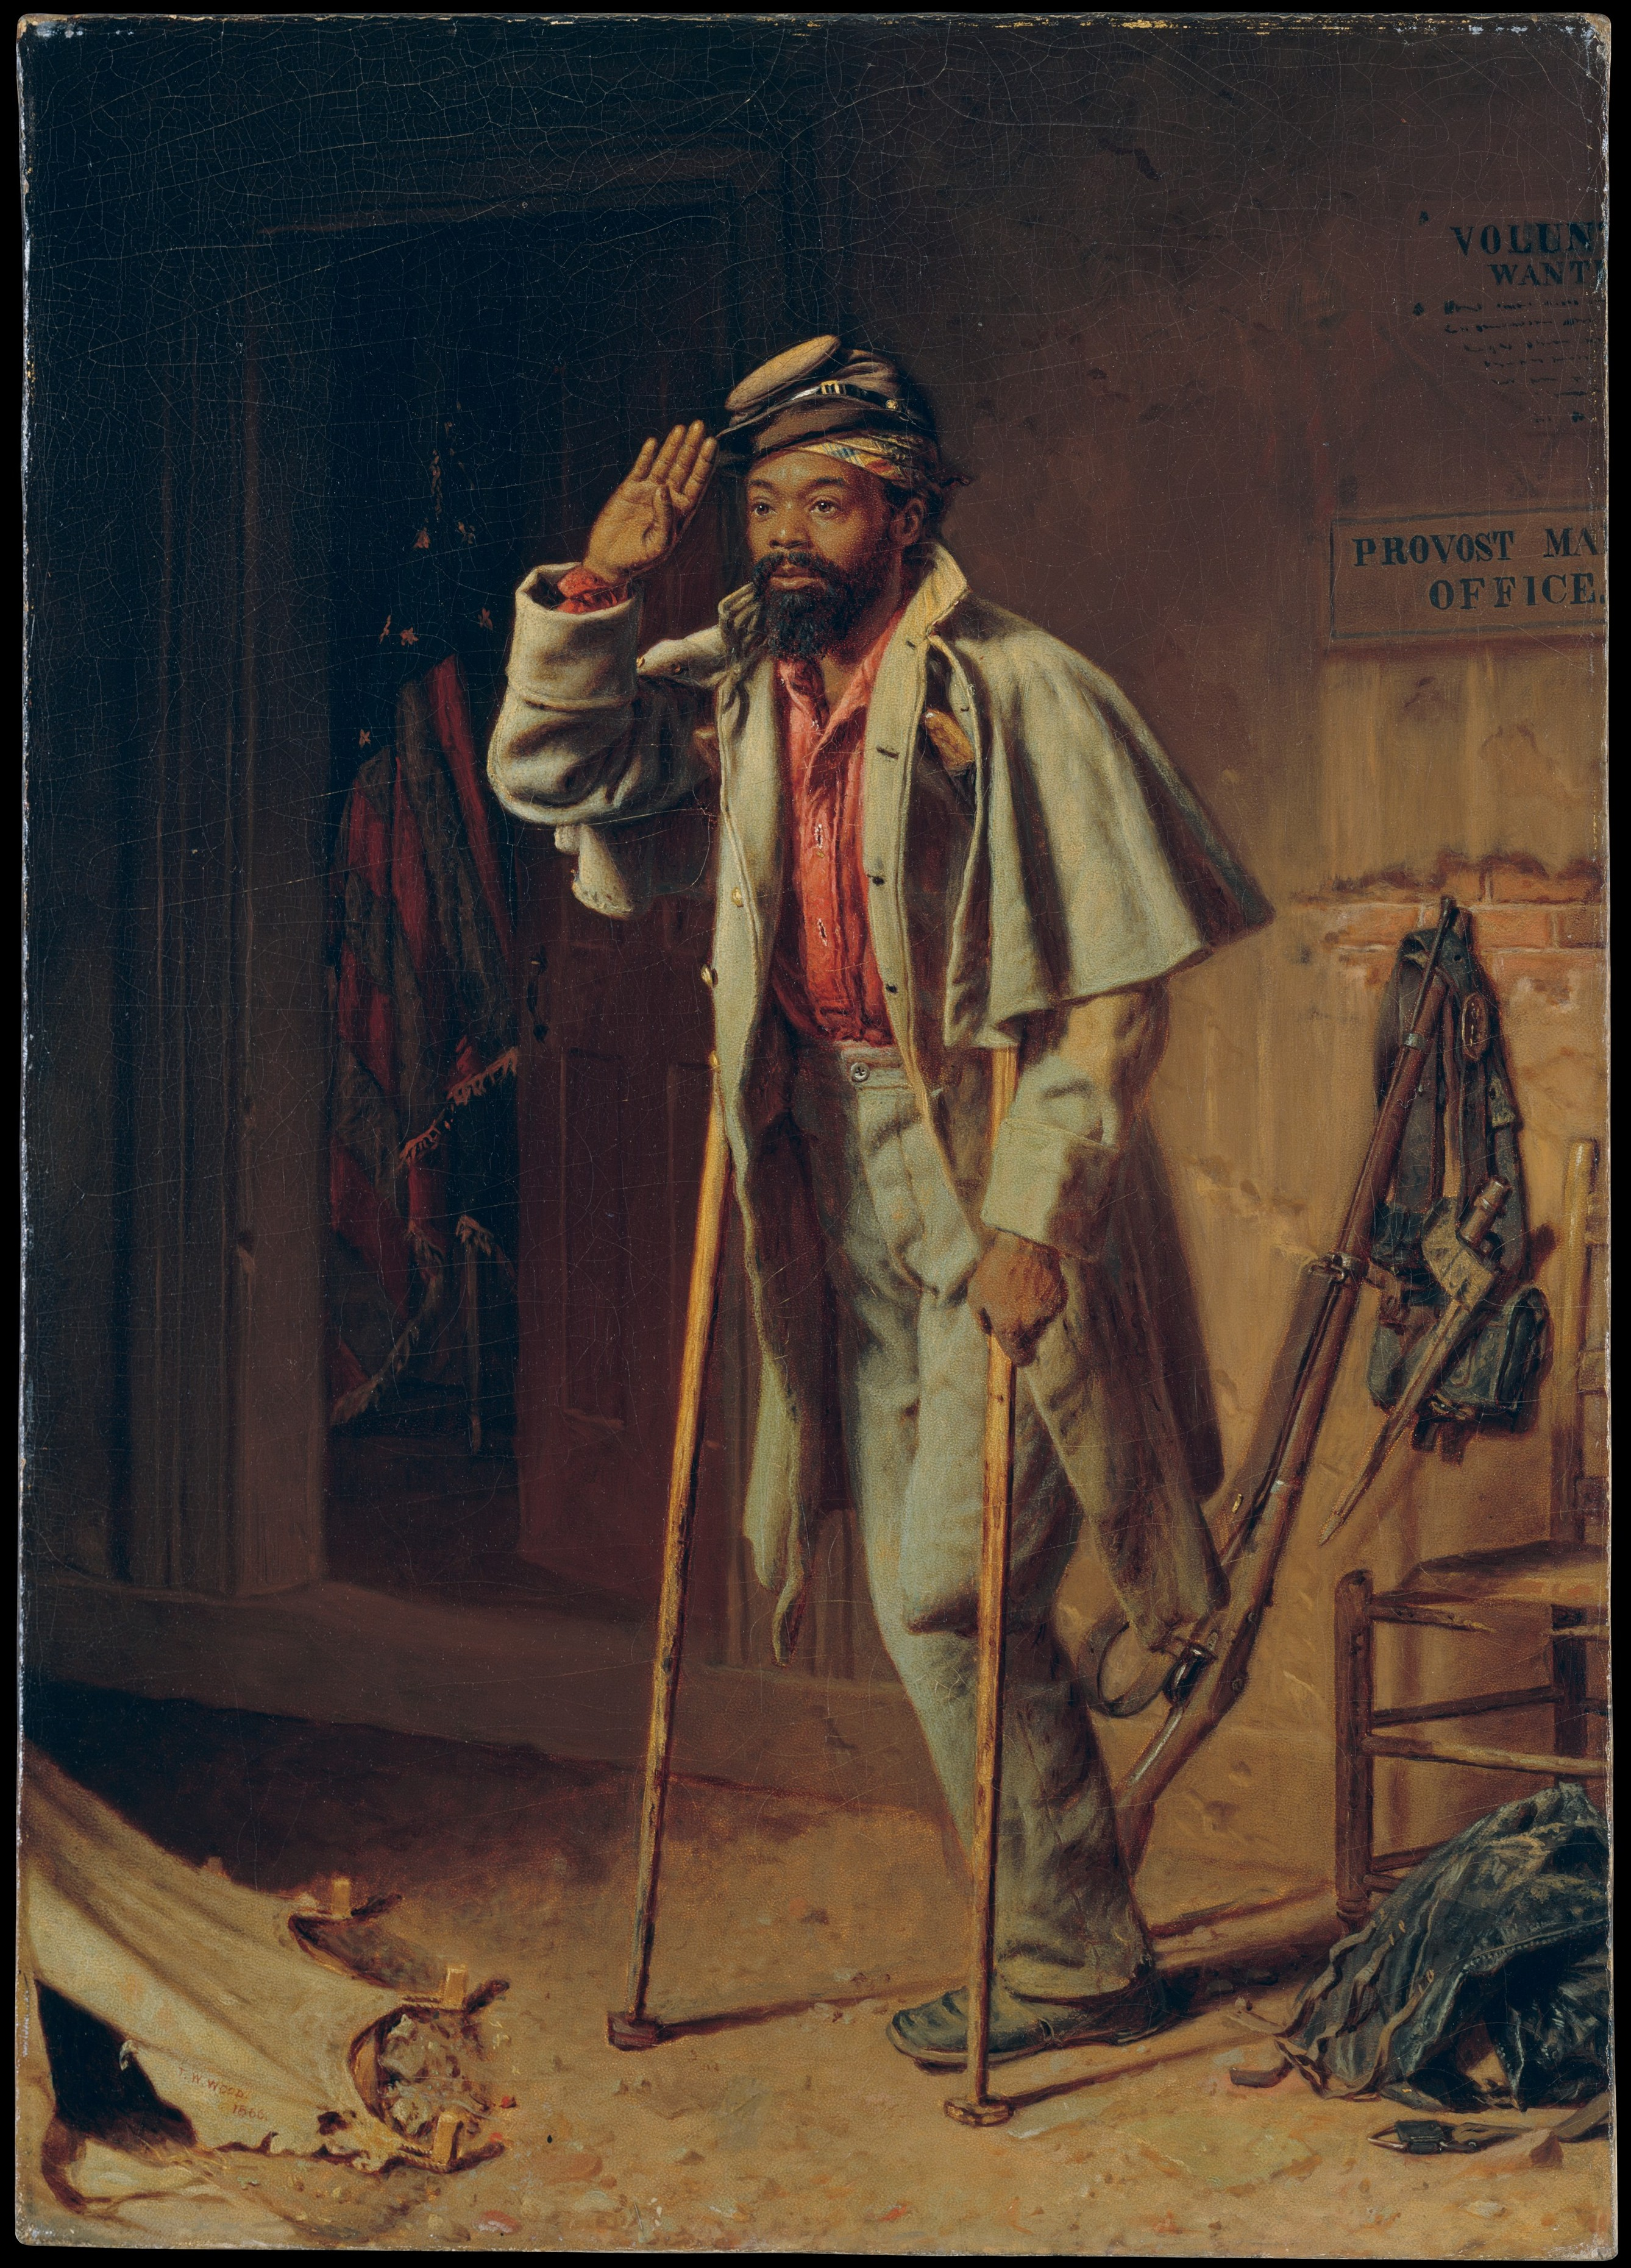 Painting of Black man standing with crutches, wearing faded Civil War uniform, hand raised in salute, with one leg amputated at the knee.